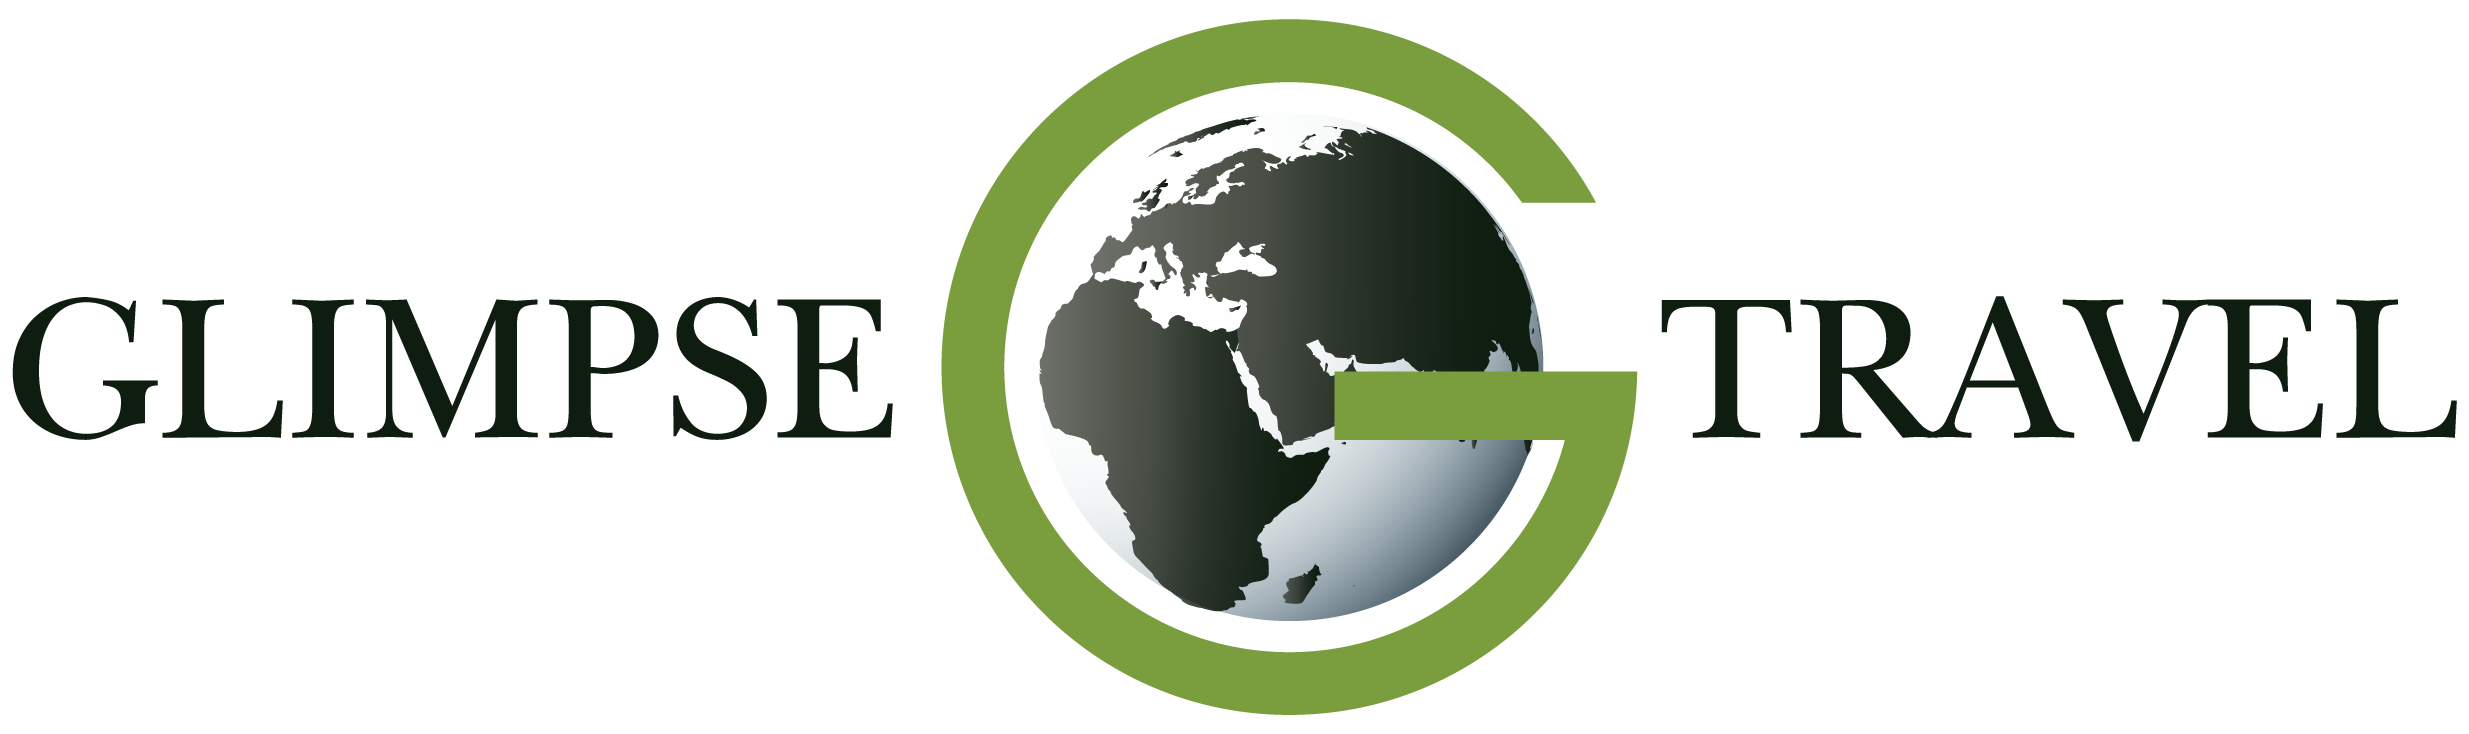 Glimpse Travel Logo